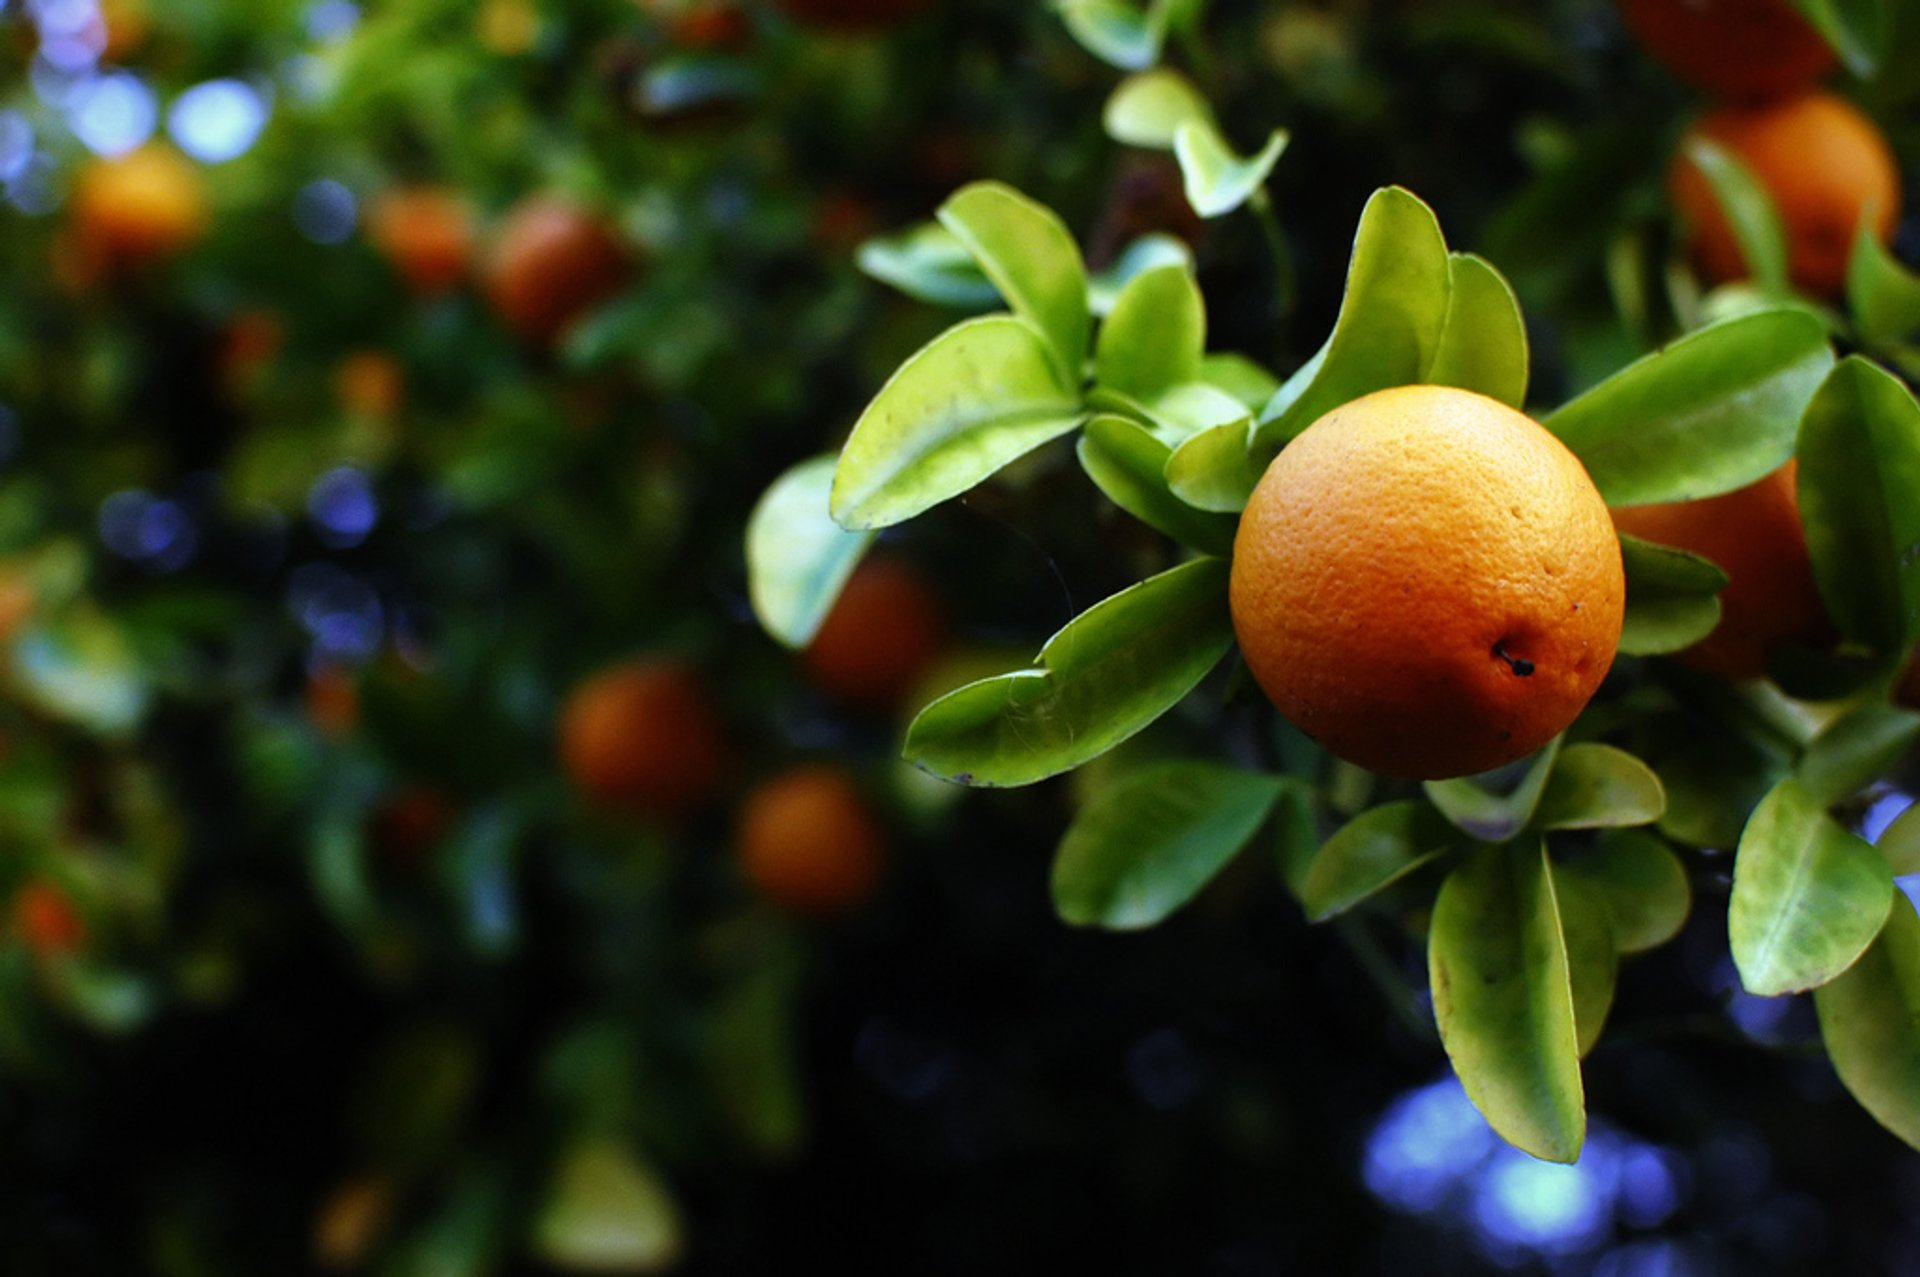 Orange Harvest in Canary Islands 2020 - Best Time